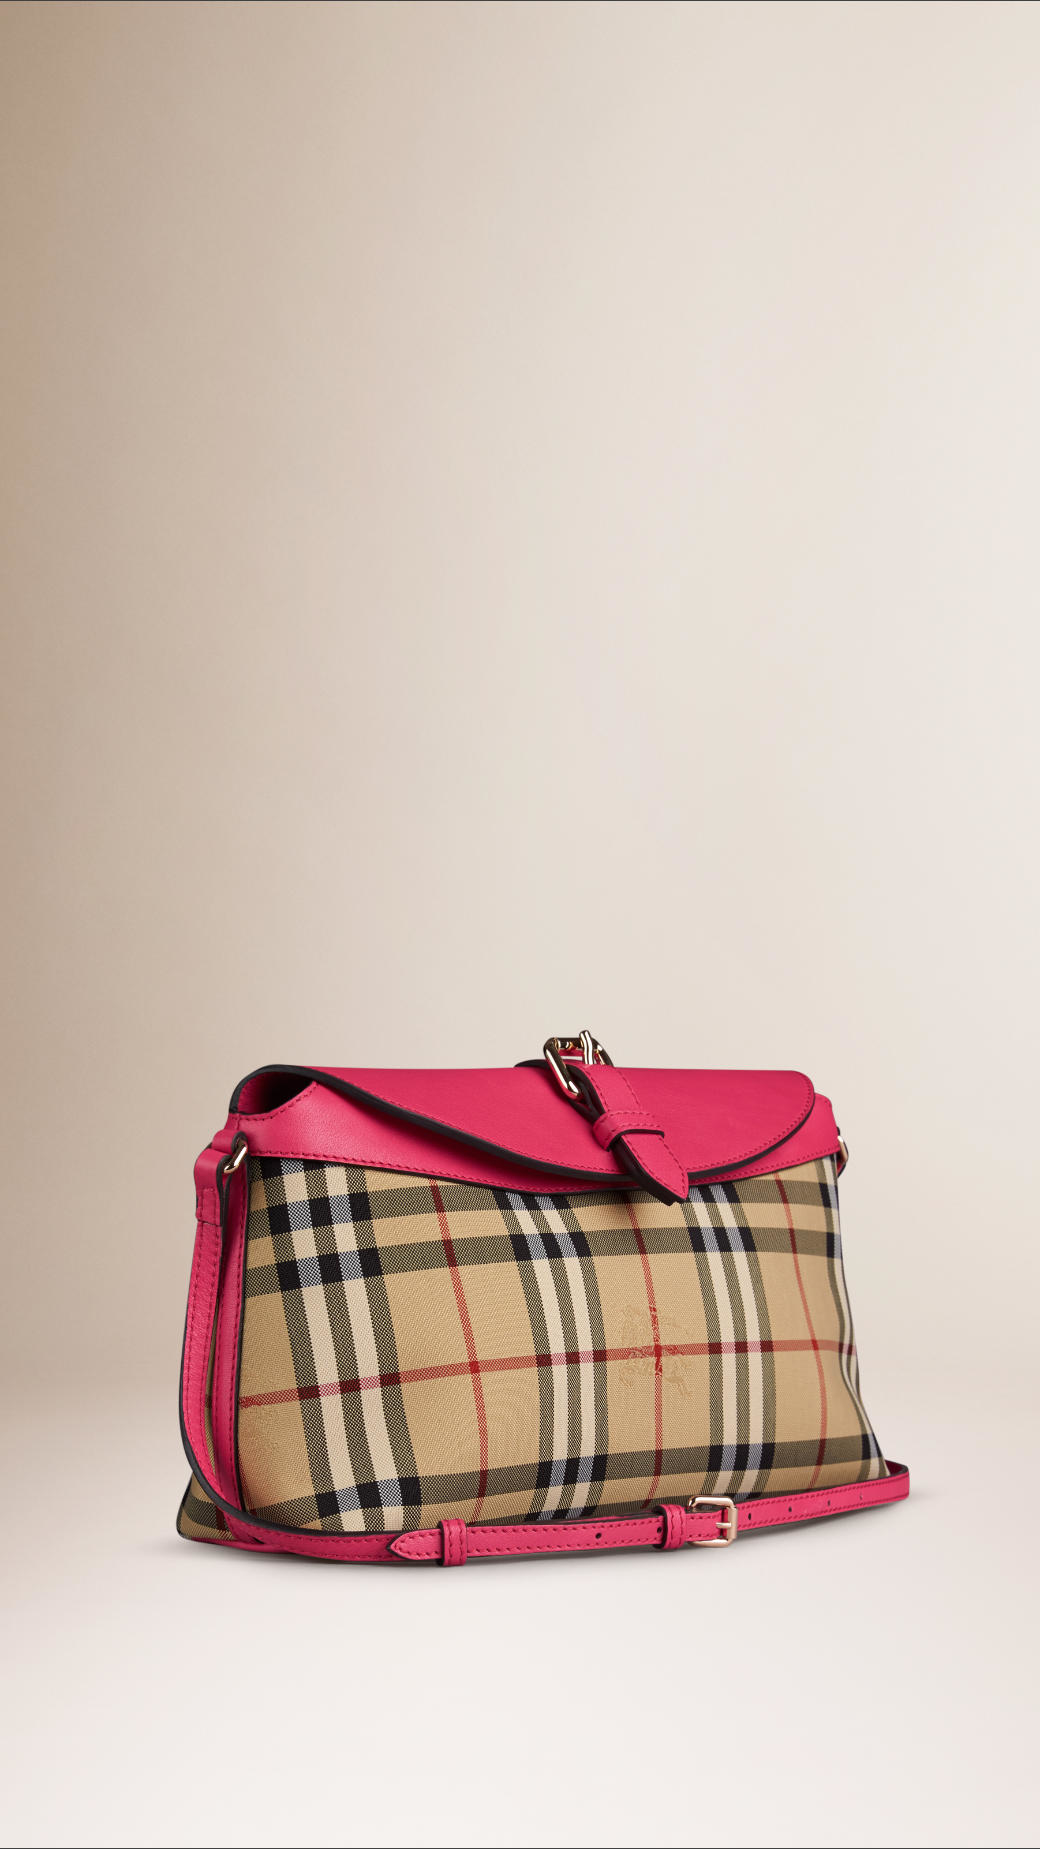 ad0a590c14ab Lyst - Burberry Small Horseferry-Check Clutch Bag in Natural